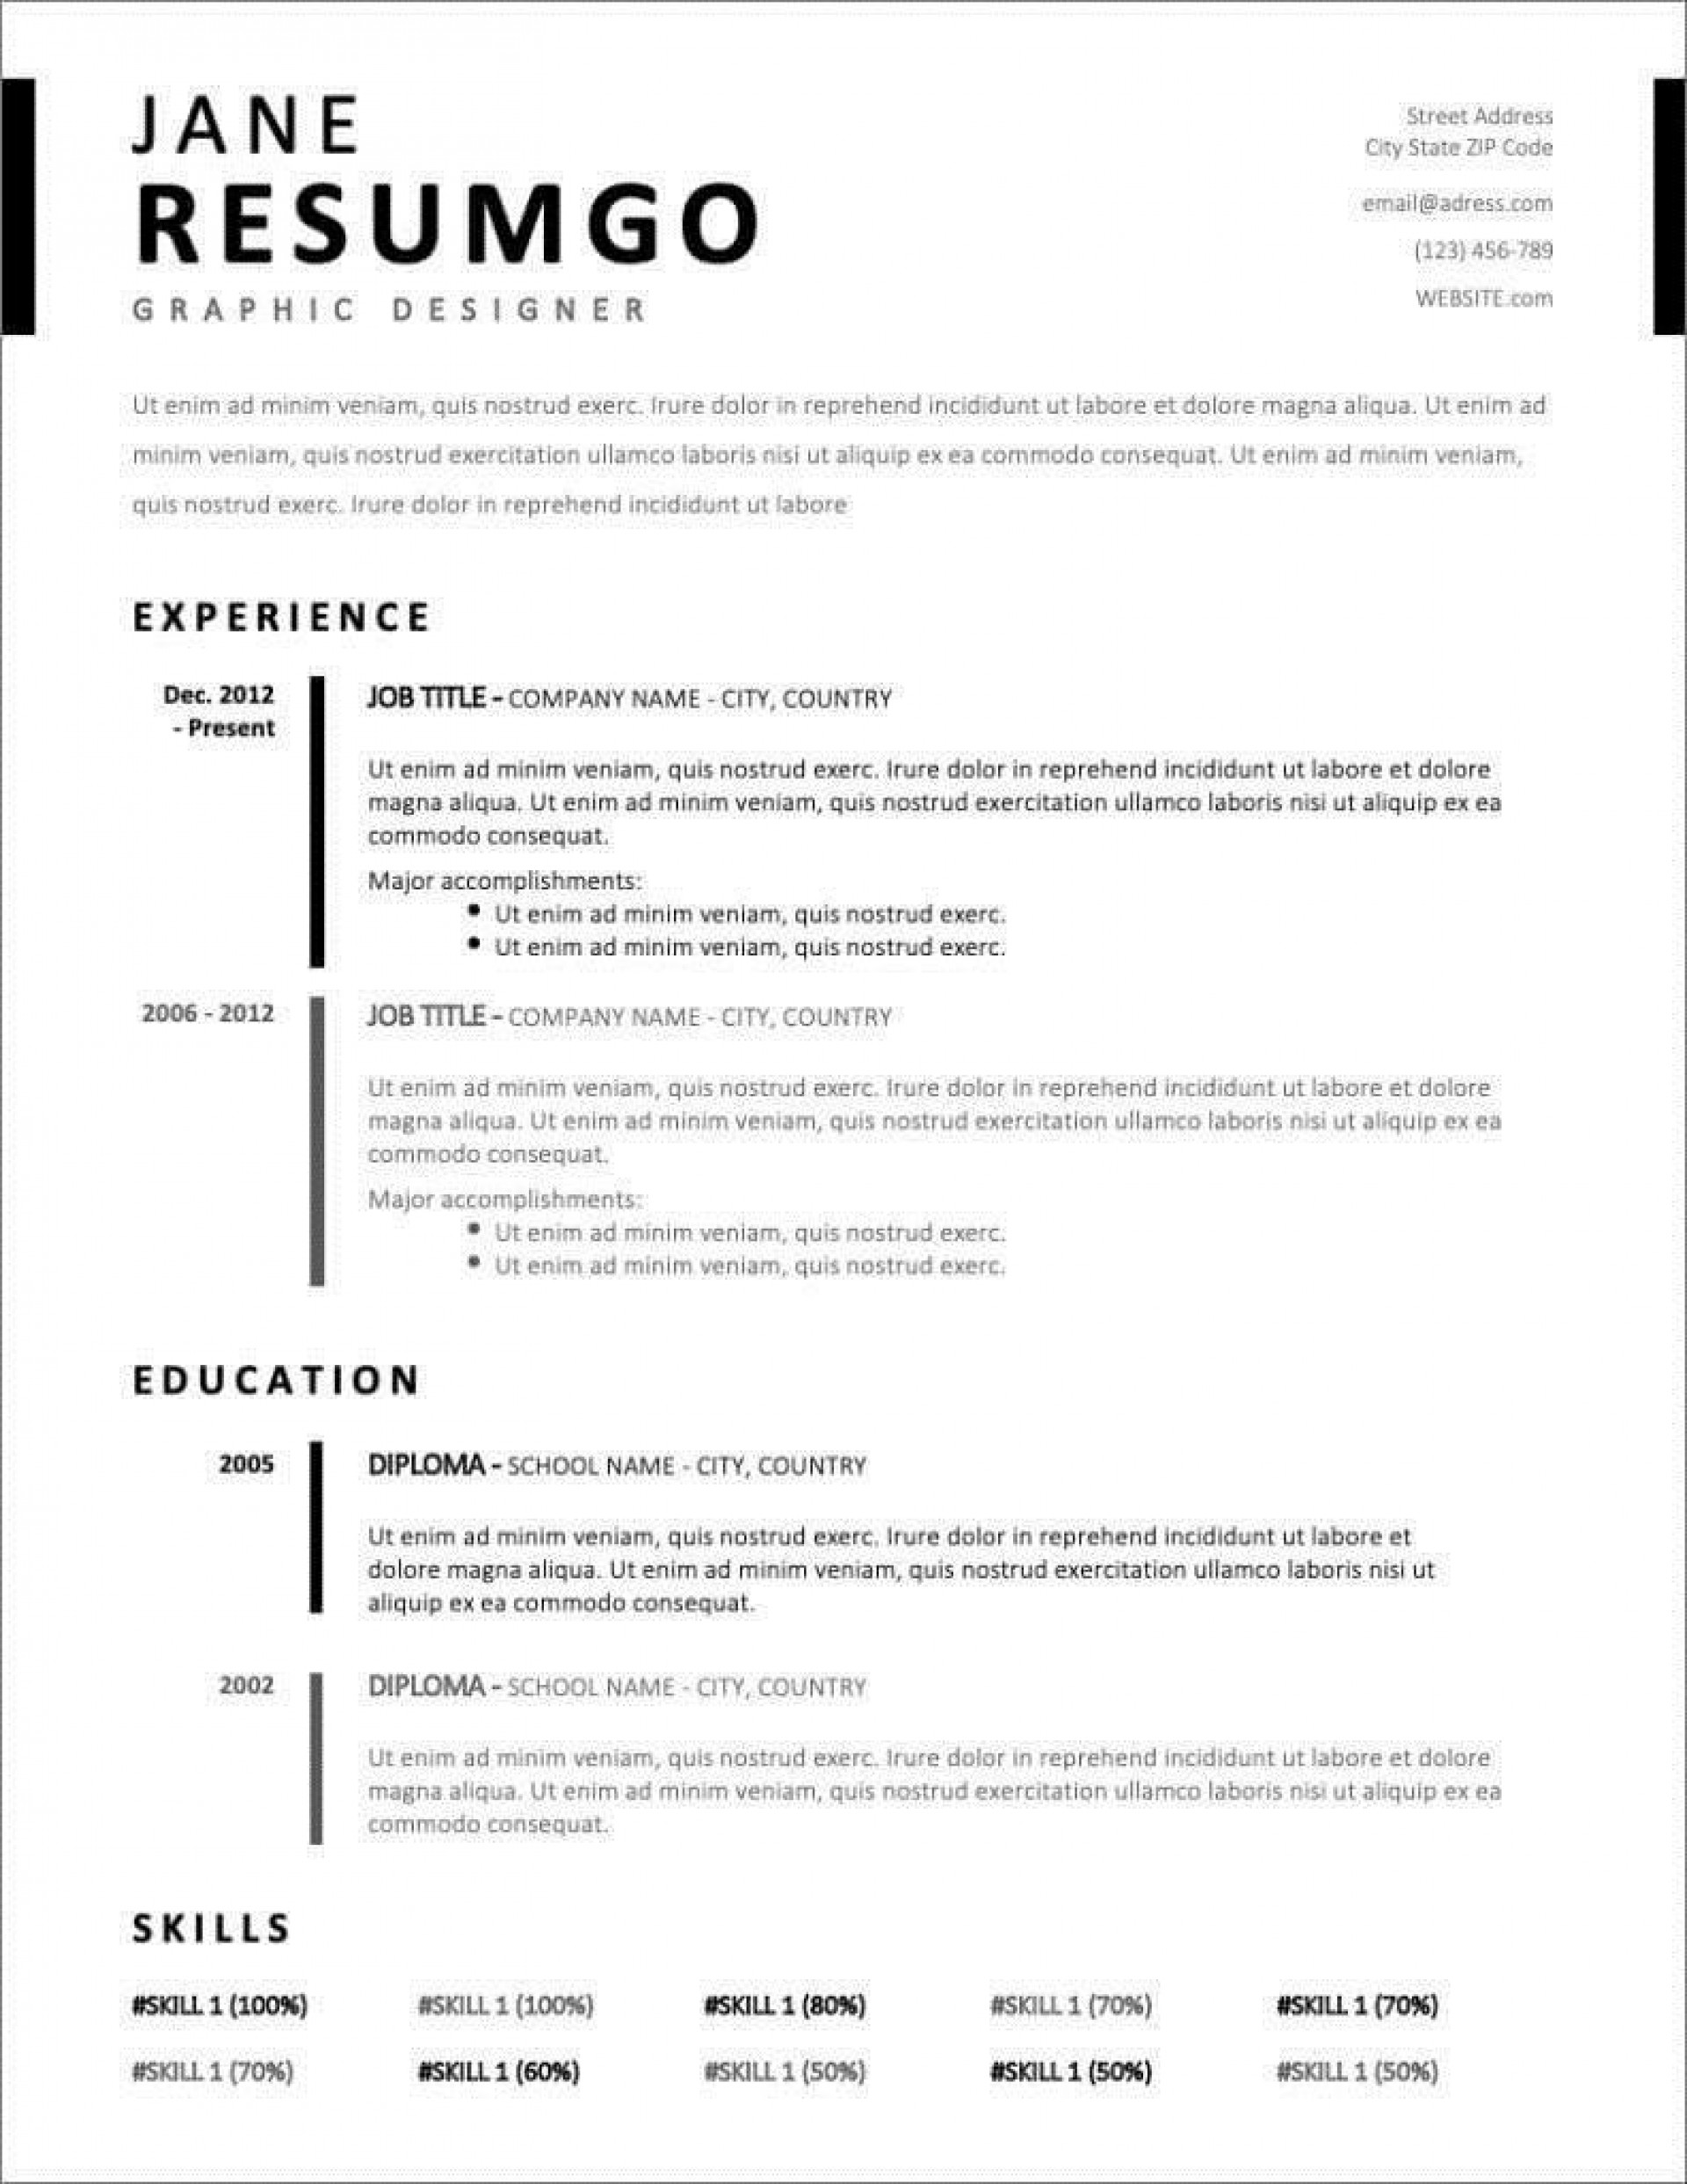 003 Wonderful Download Resume Template Free Example  For Mac Best Creative Professional Microsoft Word1920